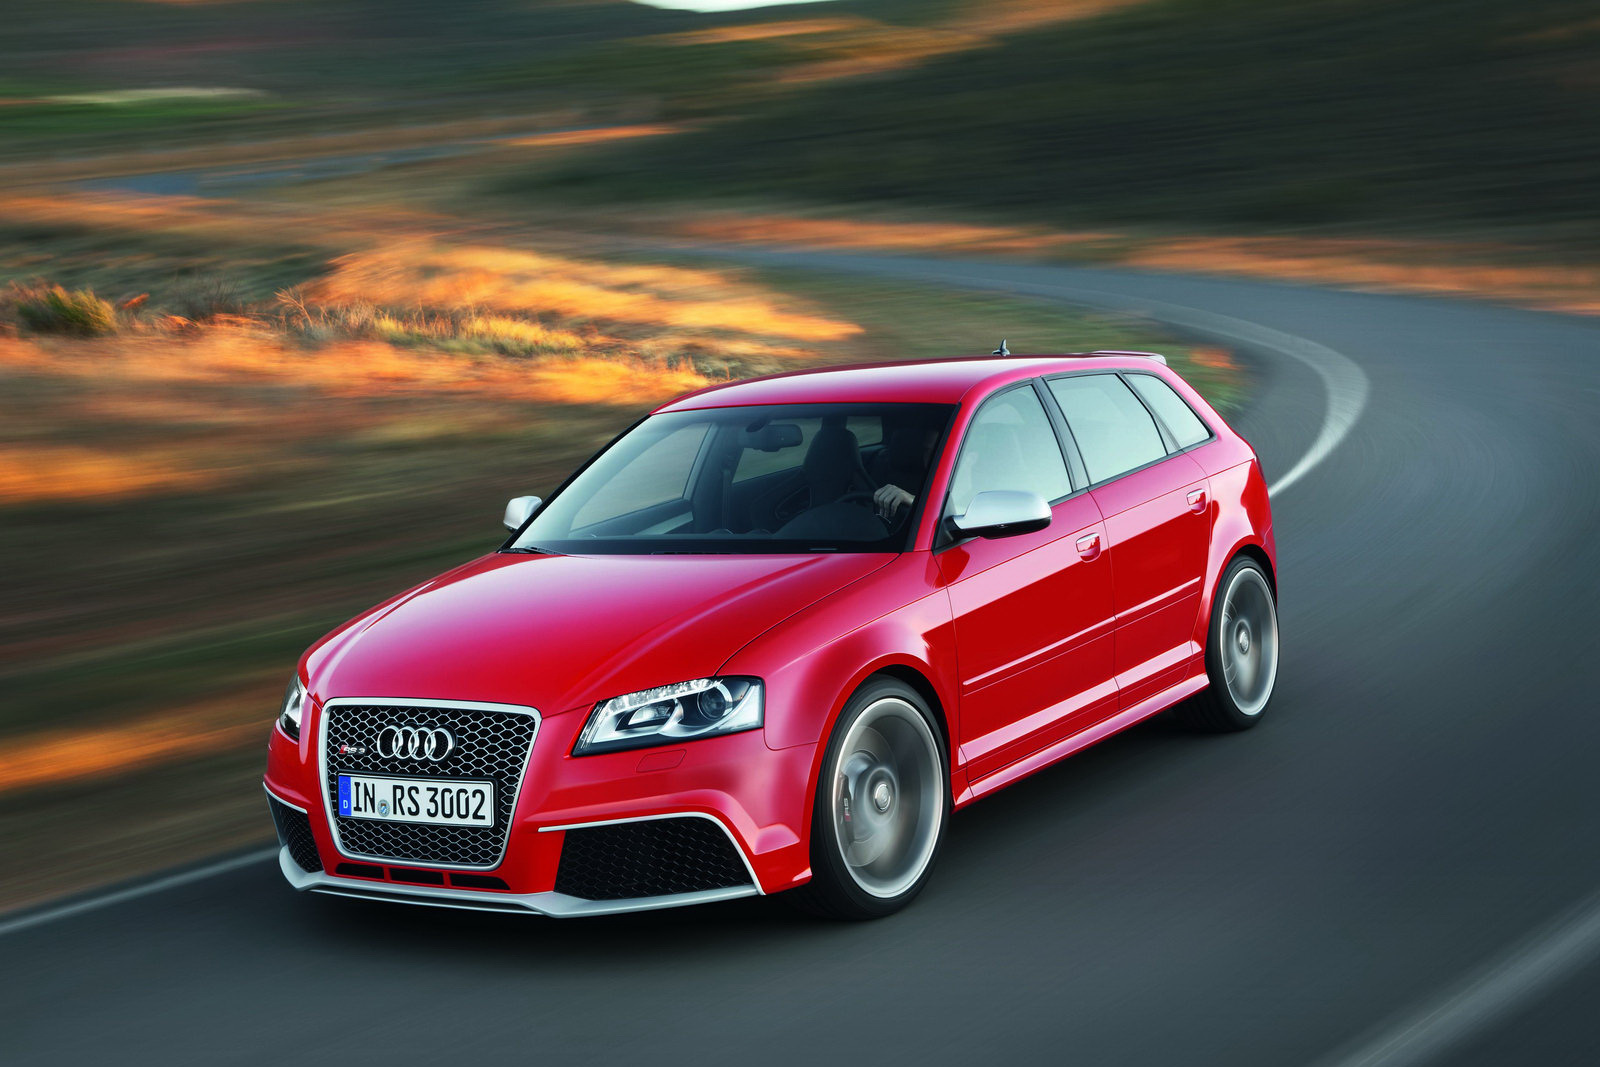 2011 audi rs 3 sportback photos features price. Black Bedroom Furniture Sets. Home Design Ideas